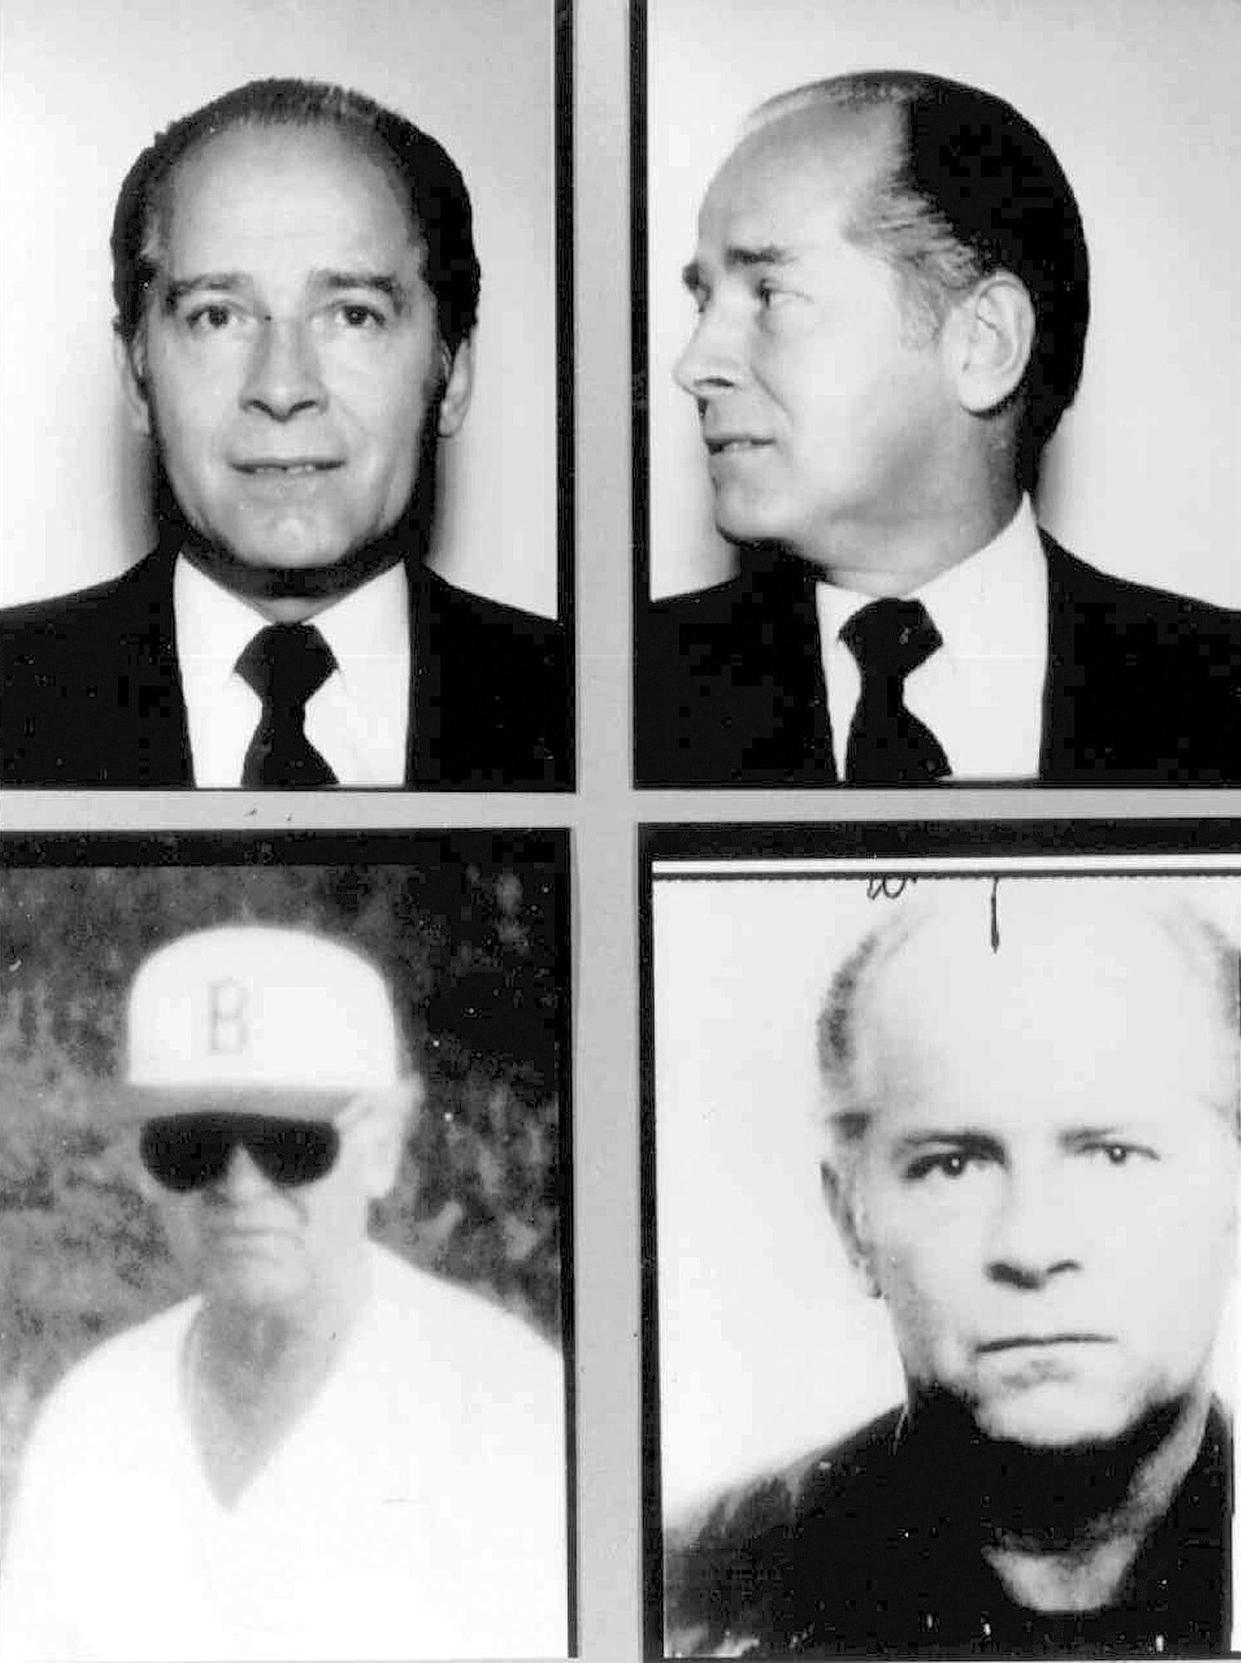 """These 1980s FBI handout file photos show Massachusetts mobster James """"Whitey"""" Bulger. Officials with the Federal Bureau of Prisons said Bulger died Oct. 30, 2018, in a West Virginia prison after being sentenced in 2013 in Boston to spend the rest of his life in prison."""